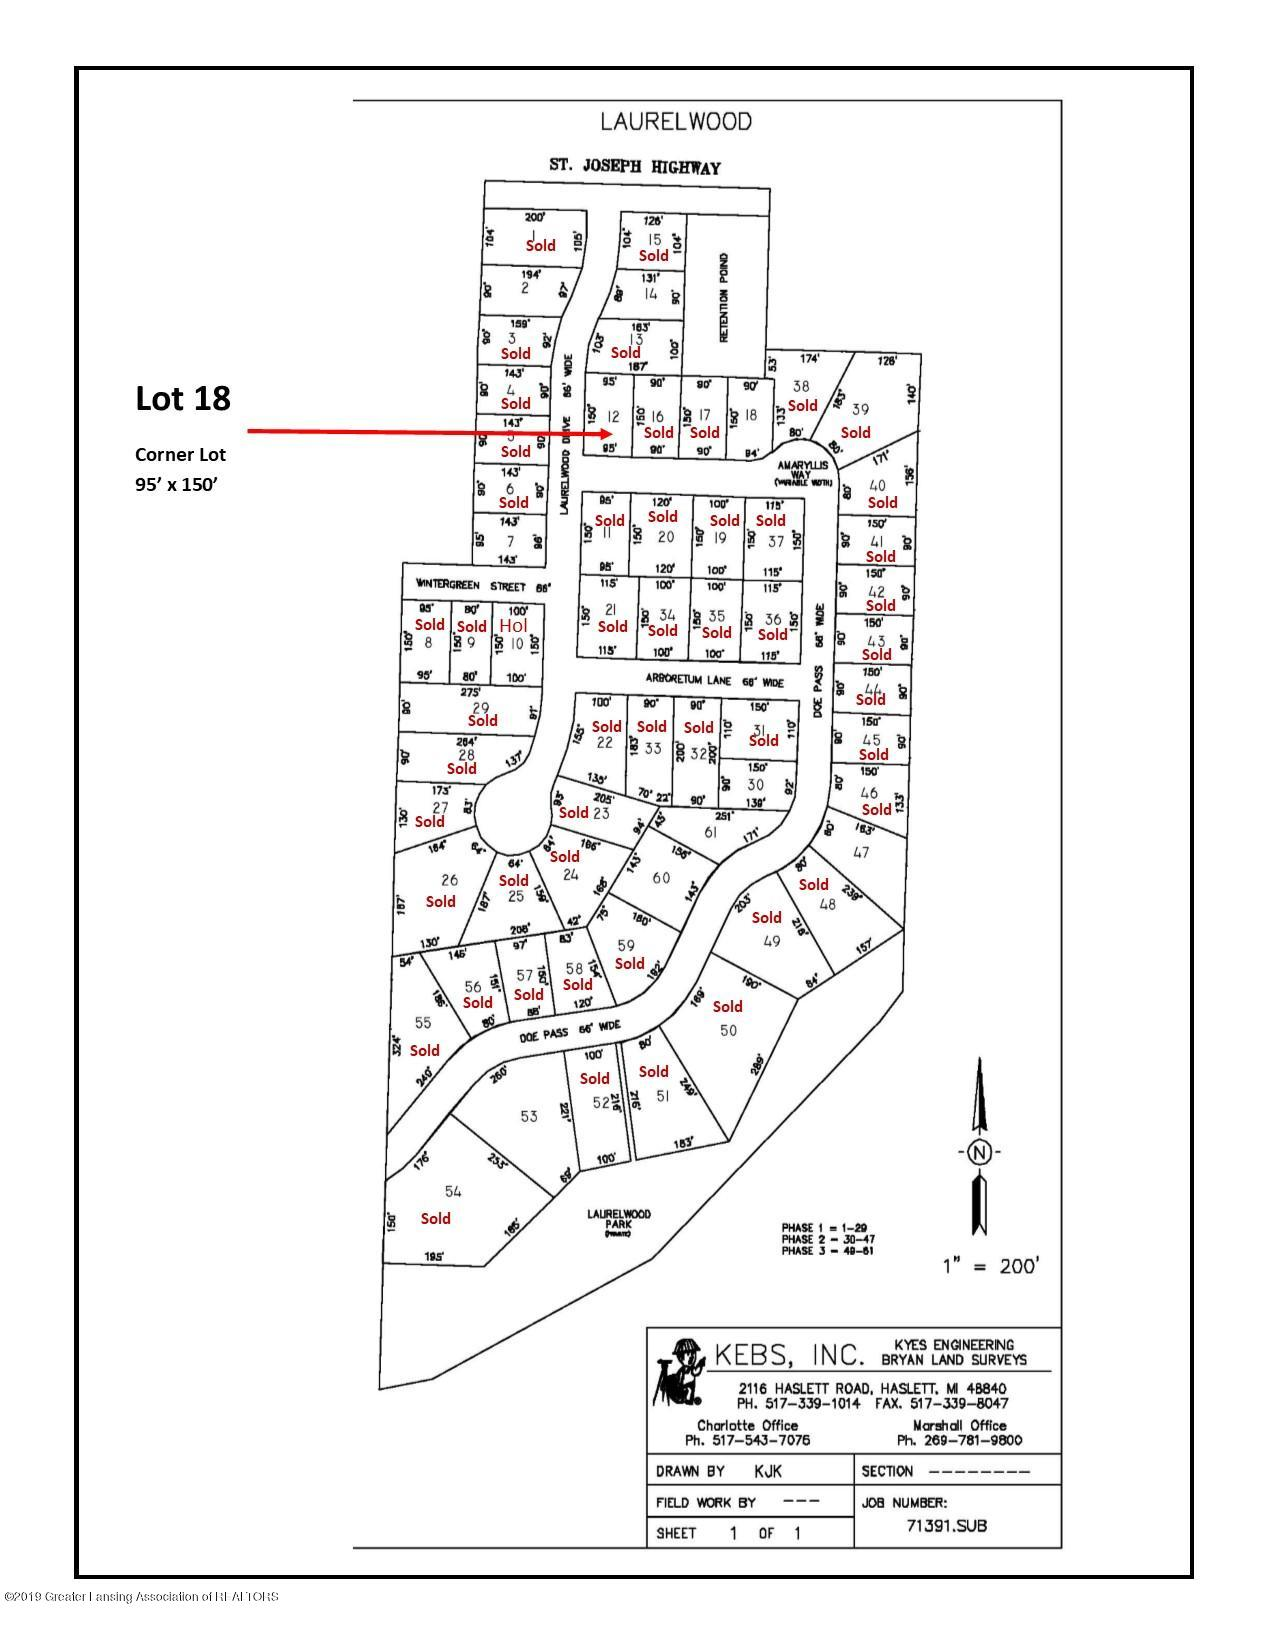 Lot 12 Amaryllis Way - Plat Map - 1